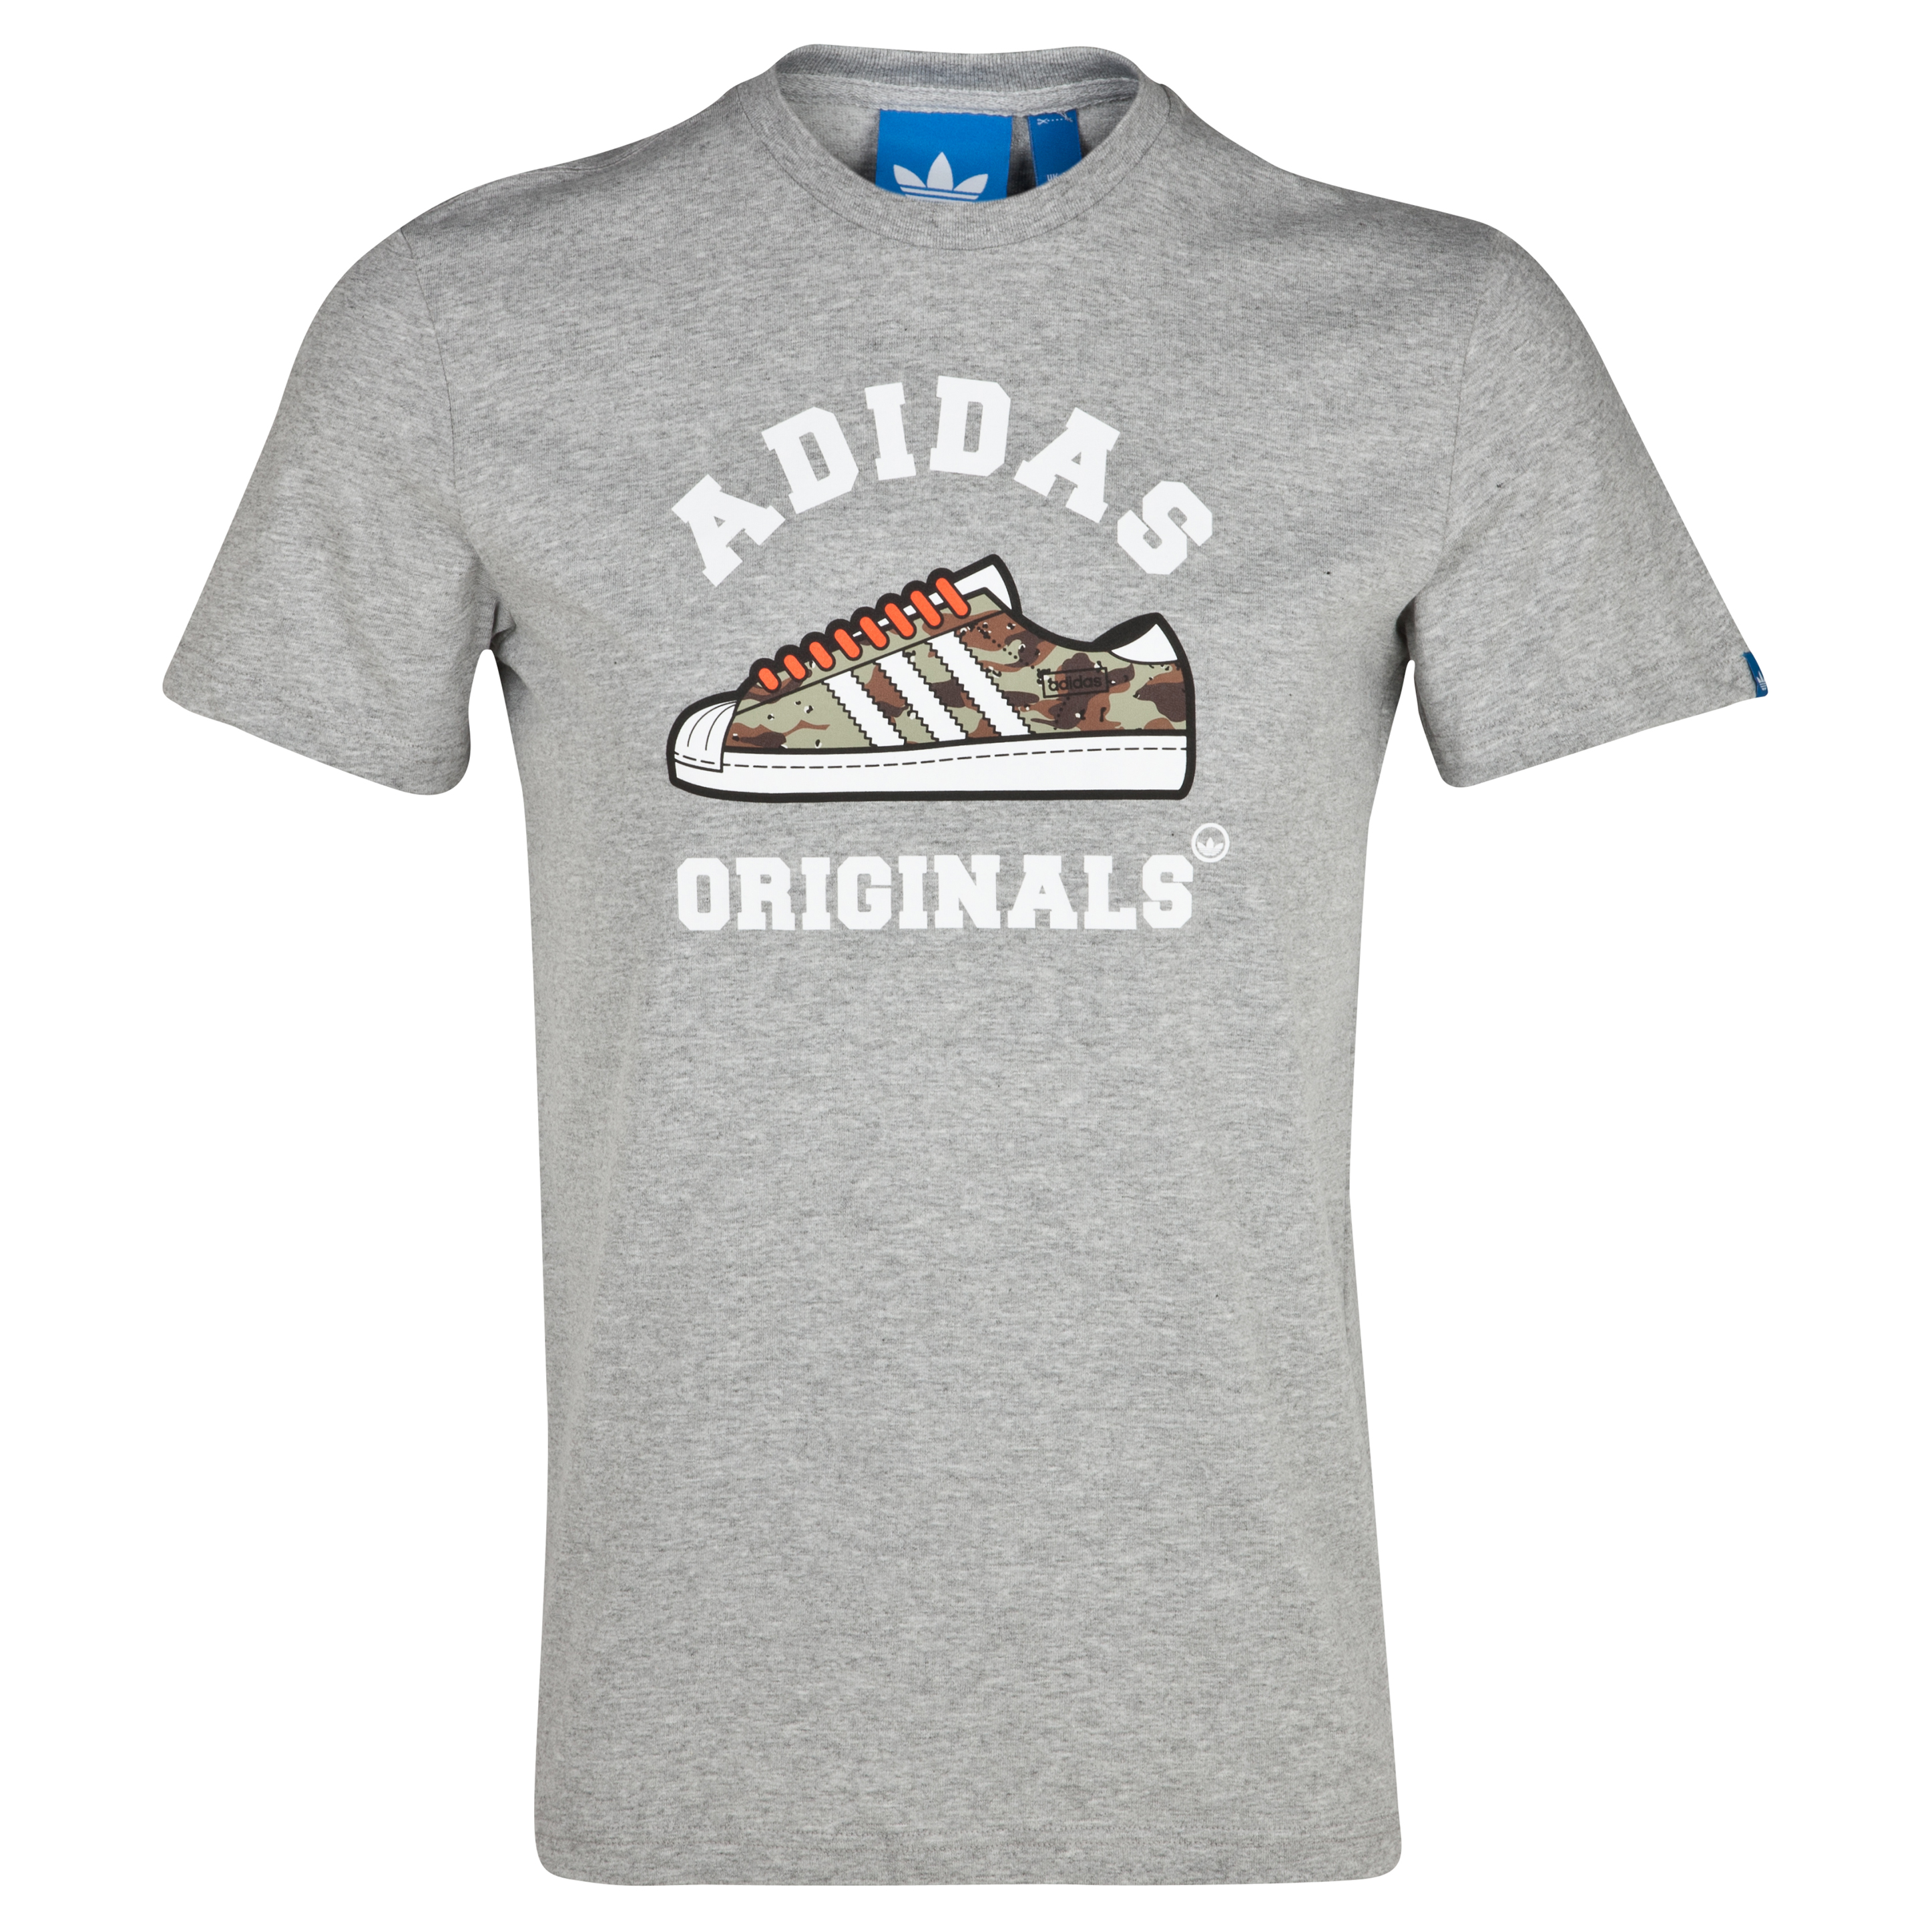 Adidas Originals Camo Tee - Medium Grey Heather